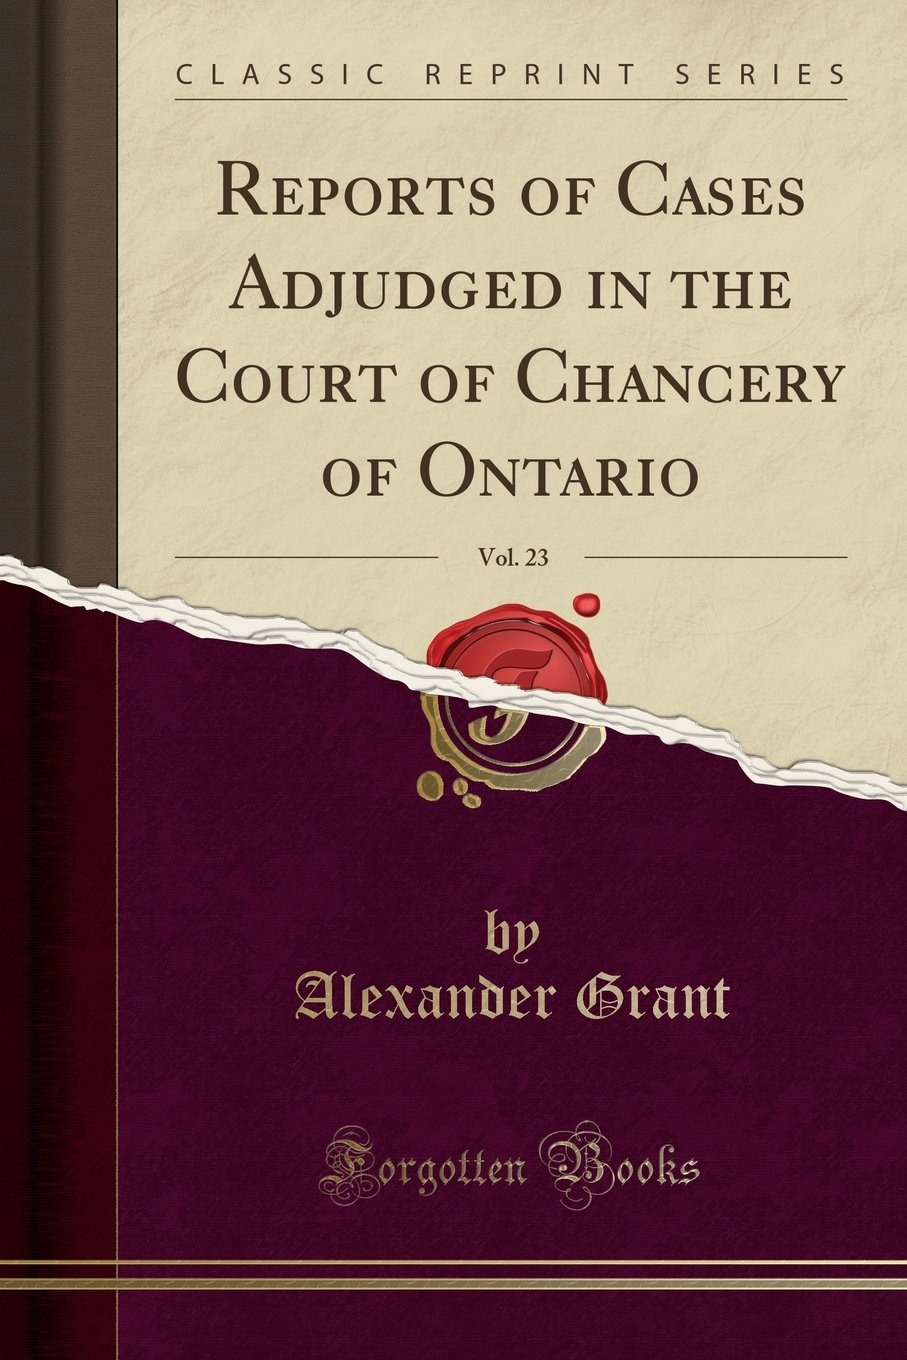 Download Reports of Cases Adjudged in the Court of Chancery of Ontario, Vol. 23 (Classic Reprint) ebook